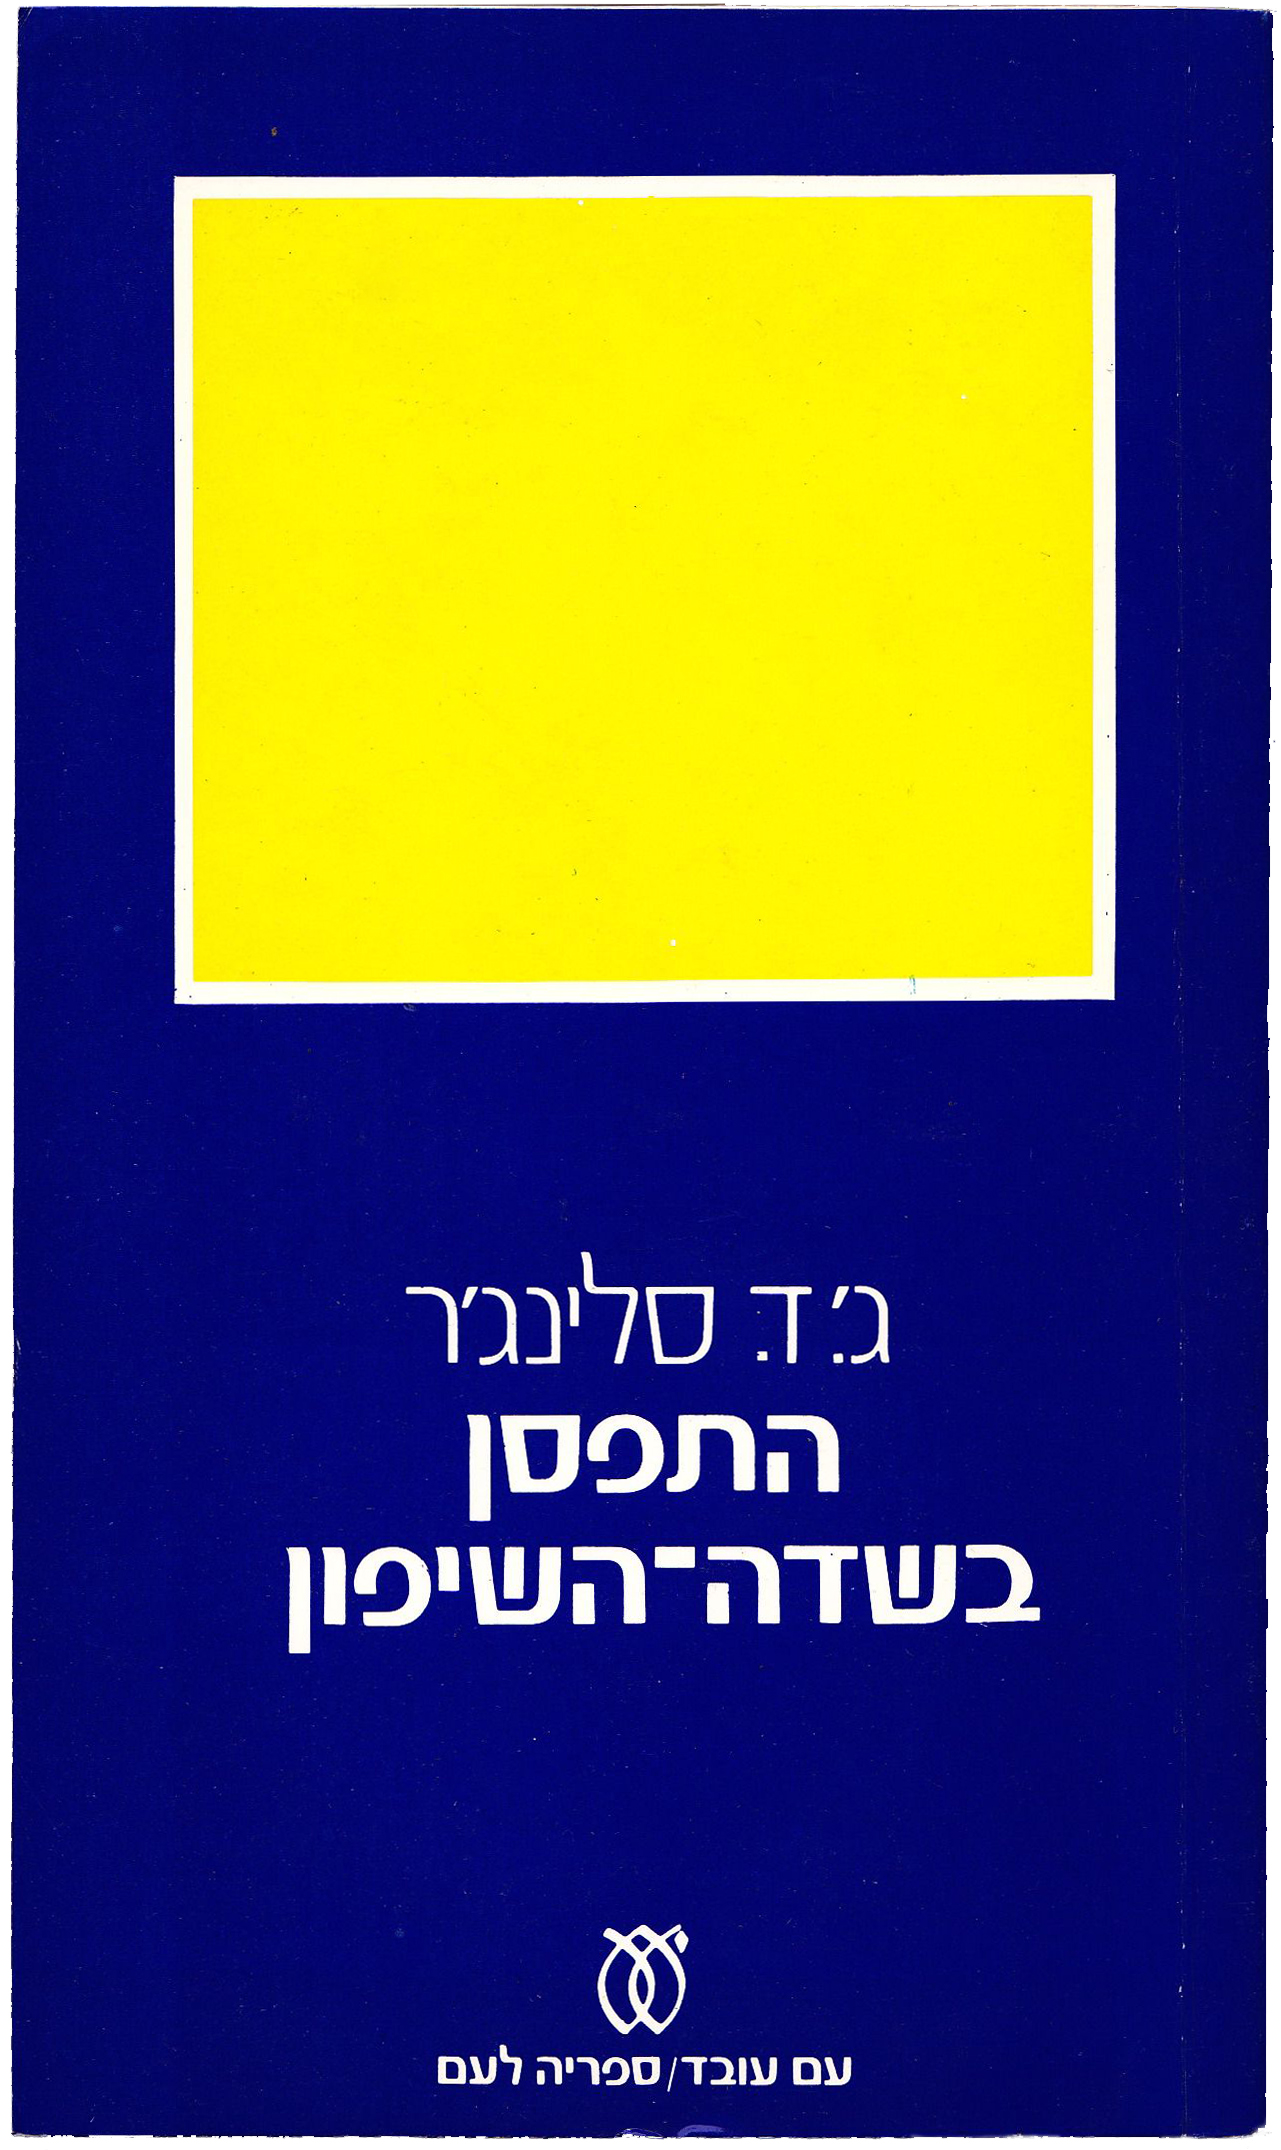 the catcher in the rye by j d salinger hebrew translation am